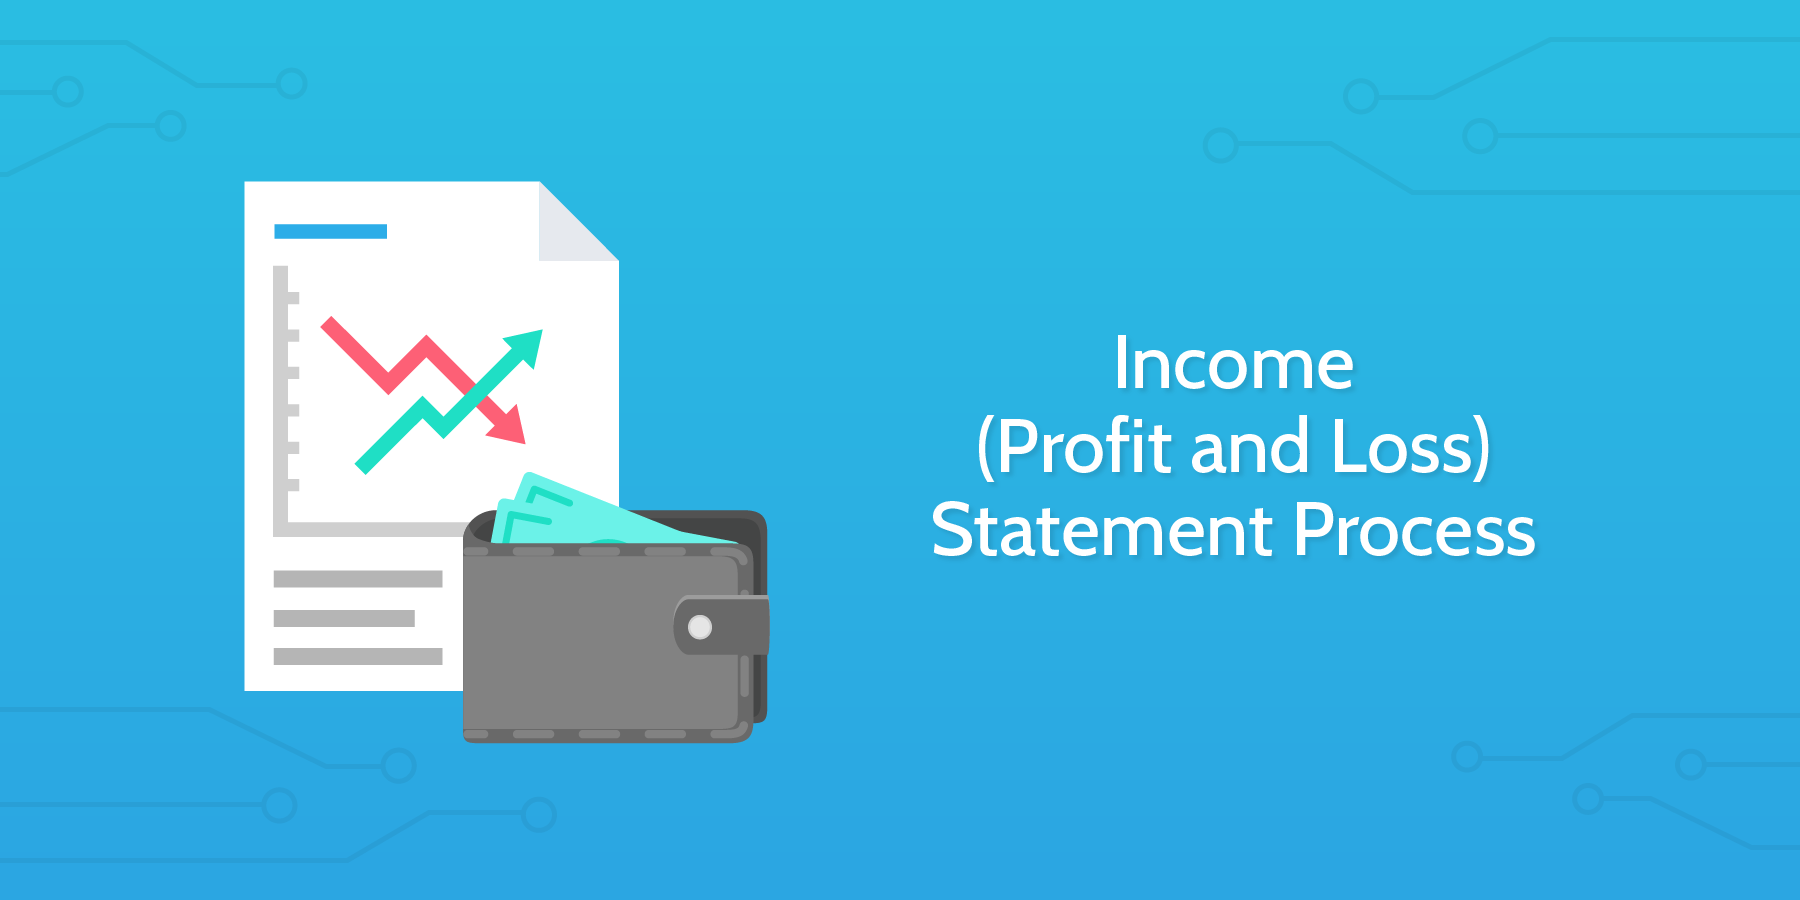 income-profit-and-loss-statement-process